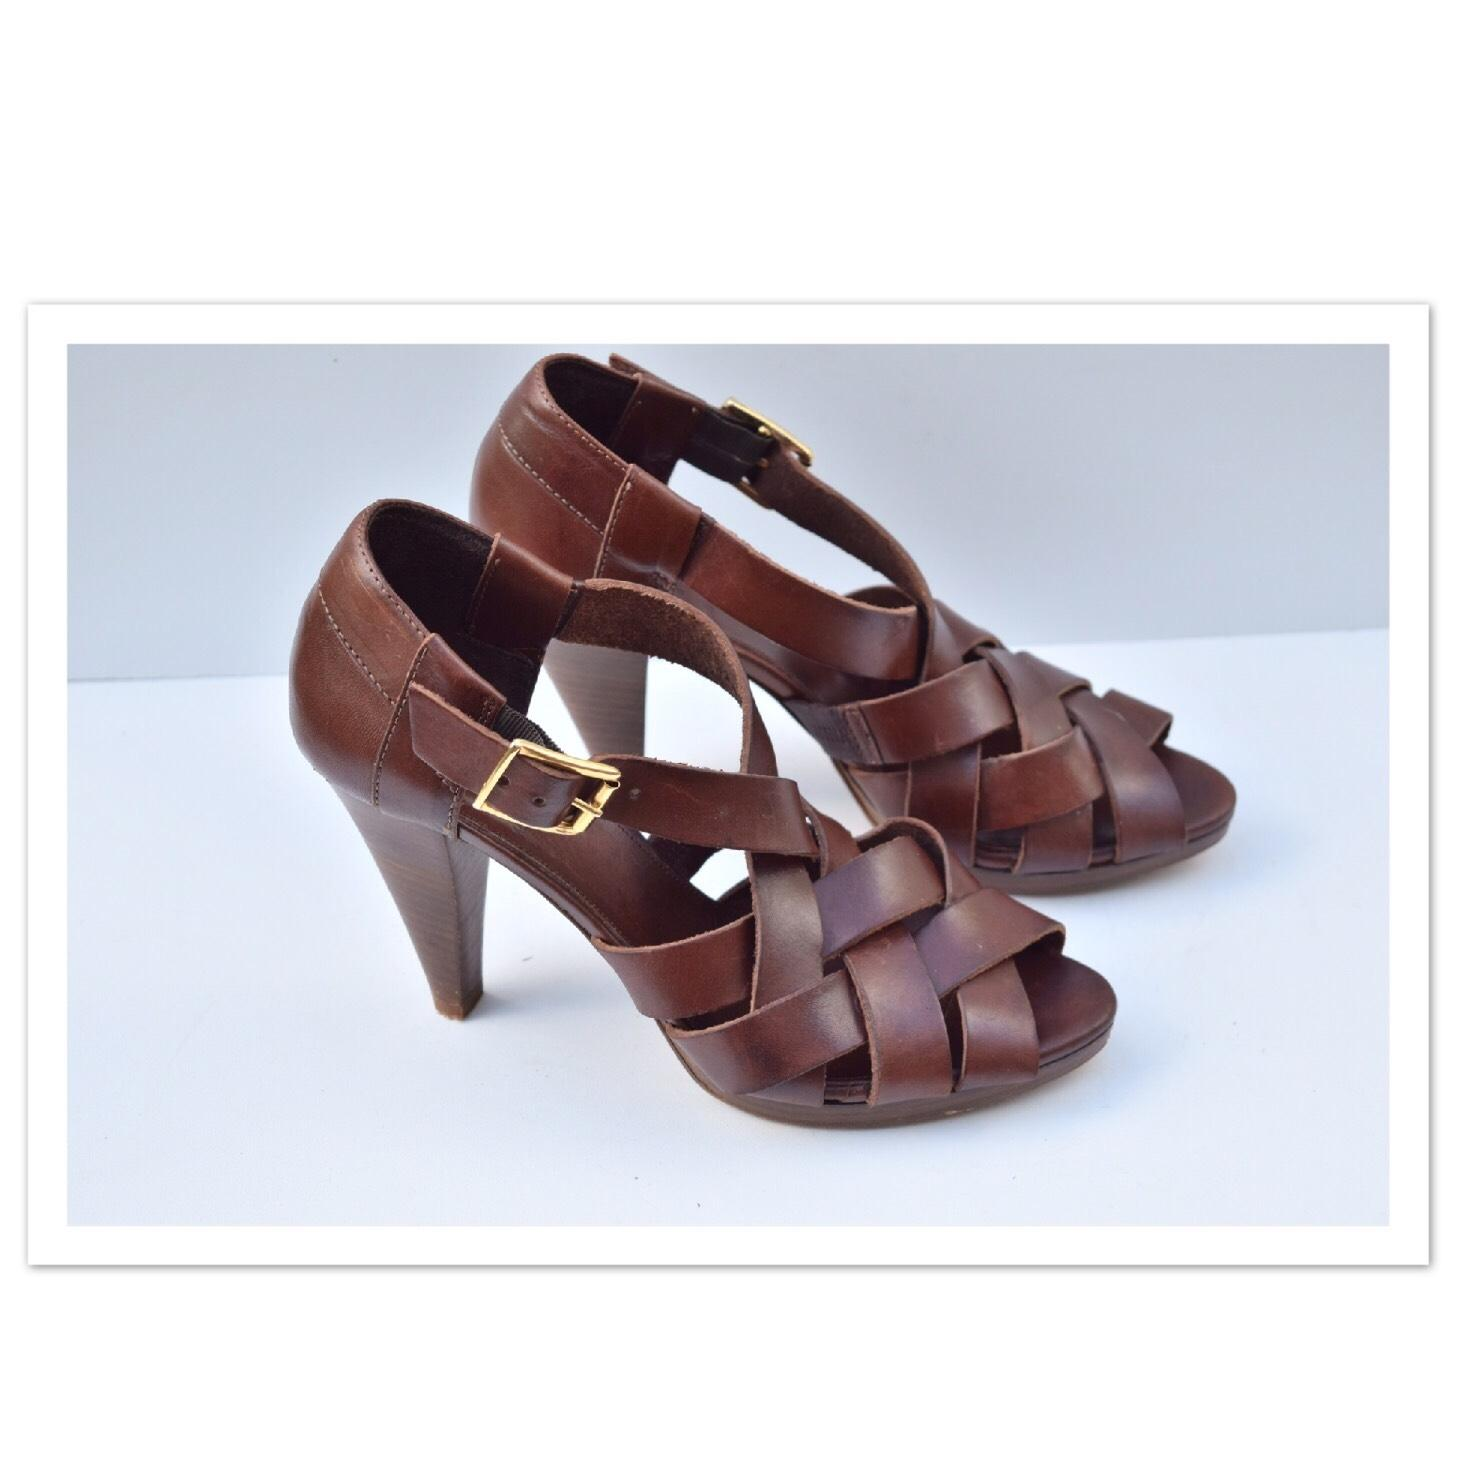 0f3f2f0f908d J.Crew Brown Ares Sandals Size US 7.5 Regular Regular Regular (M